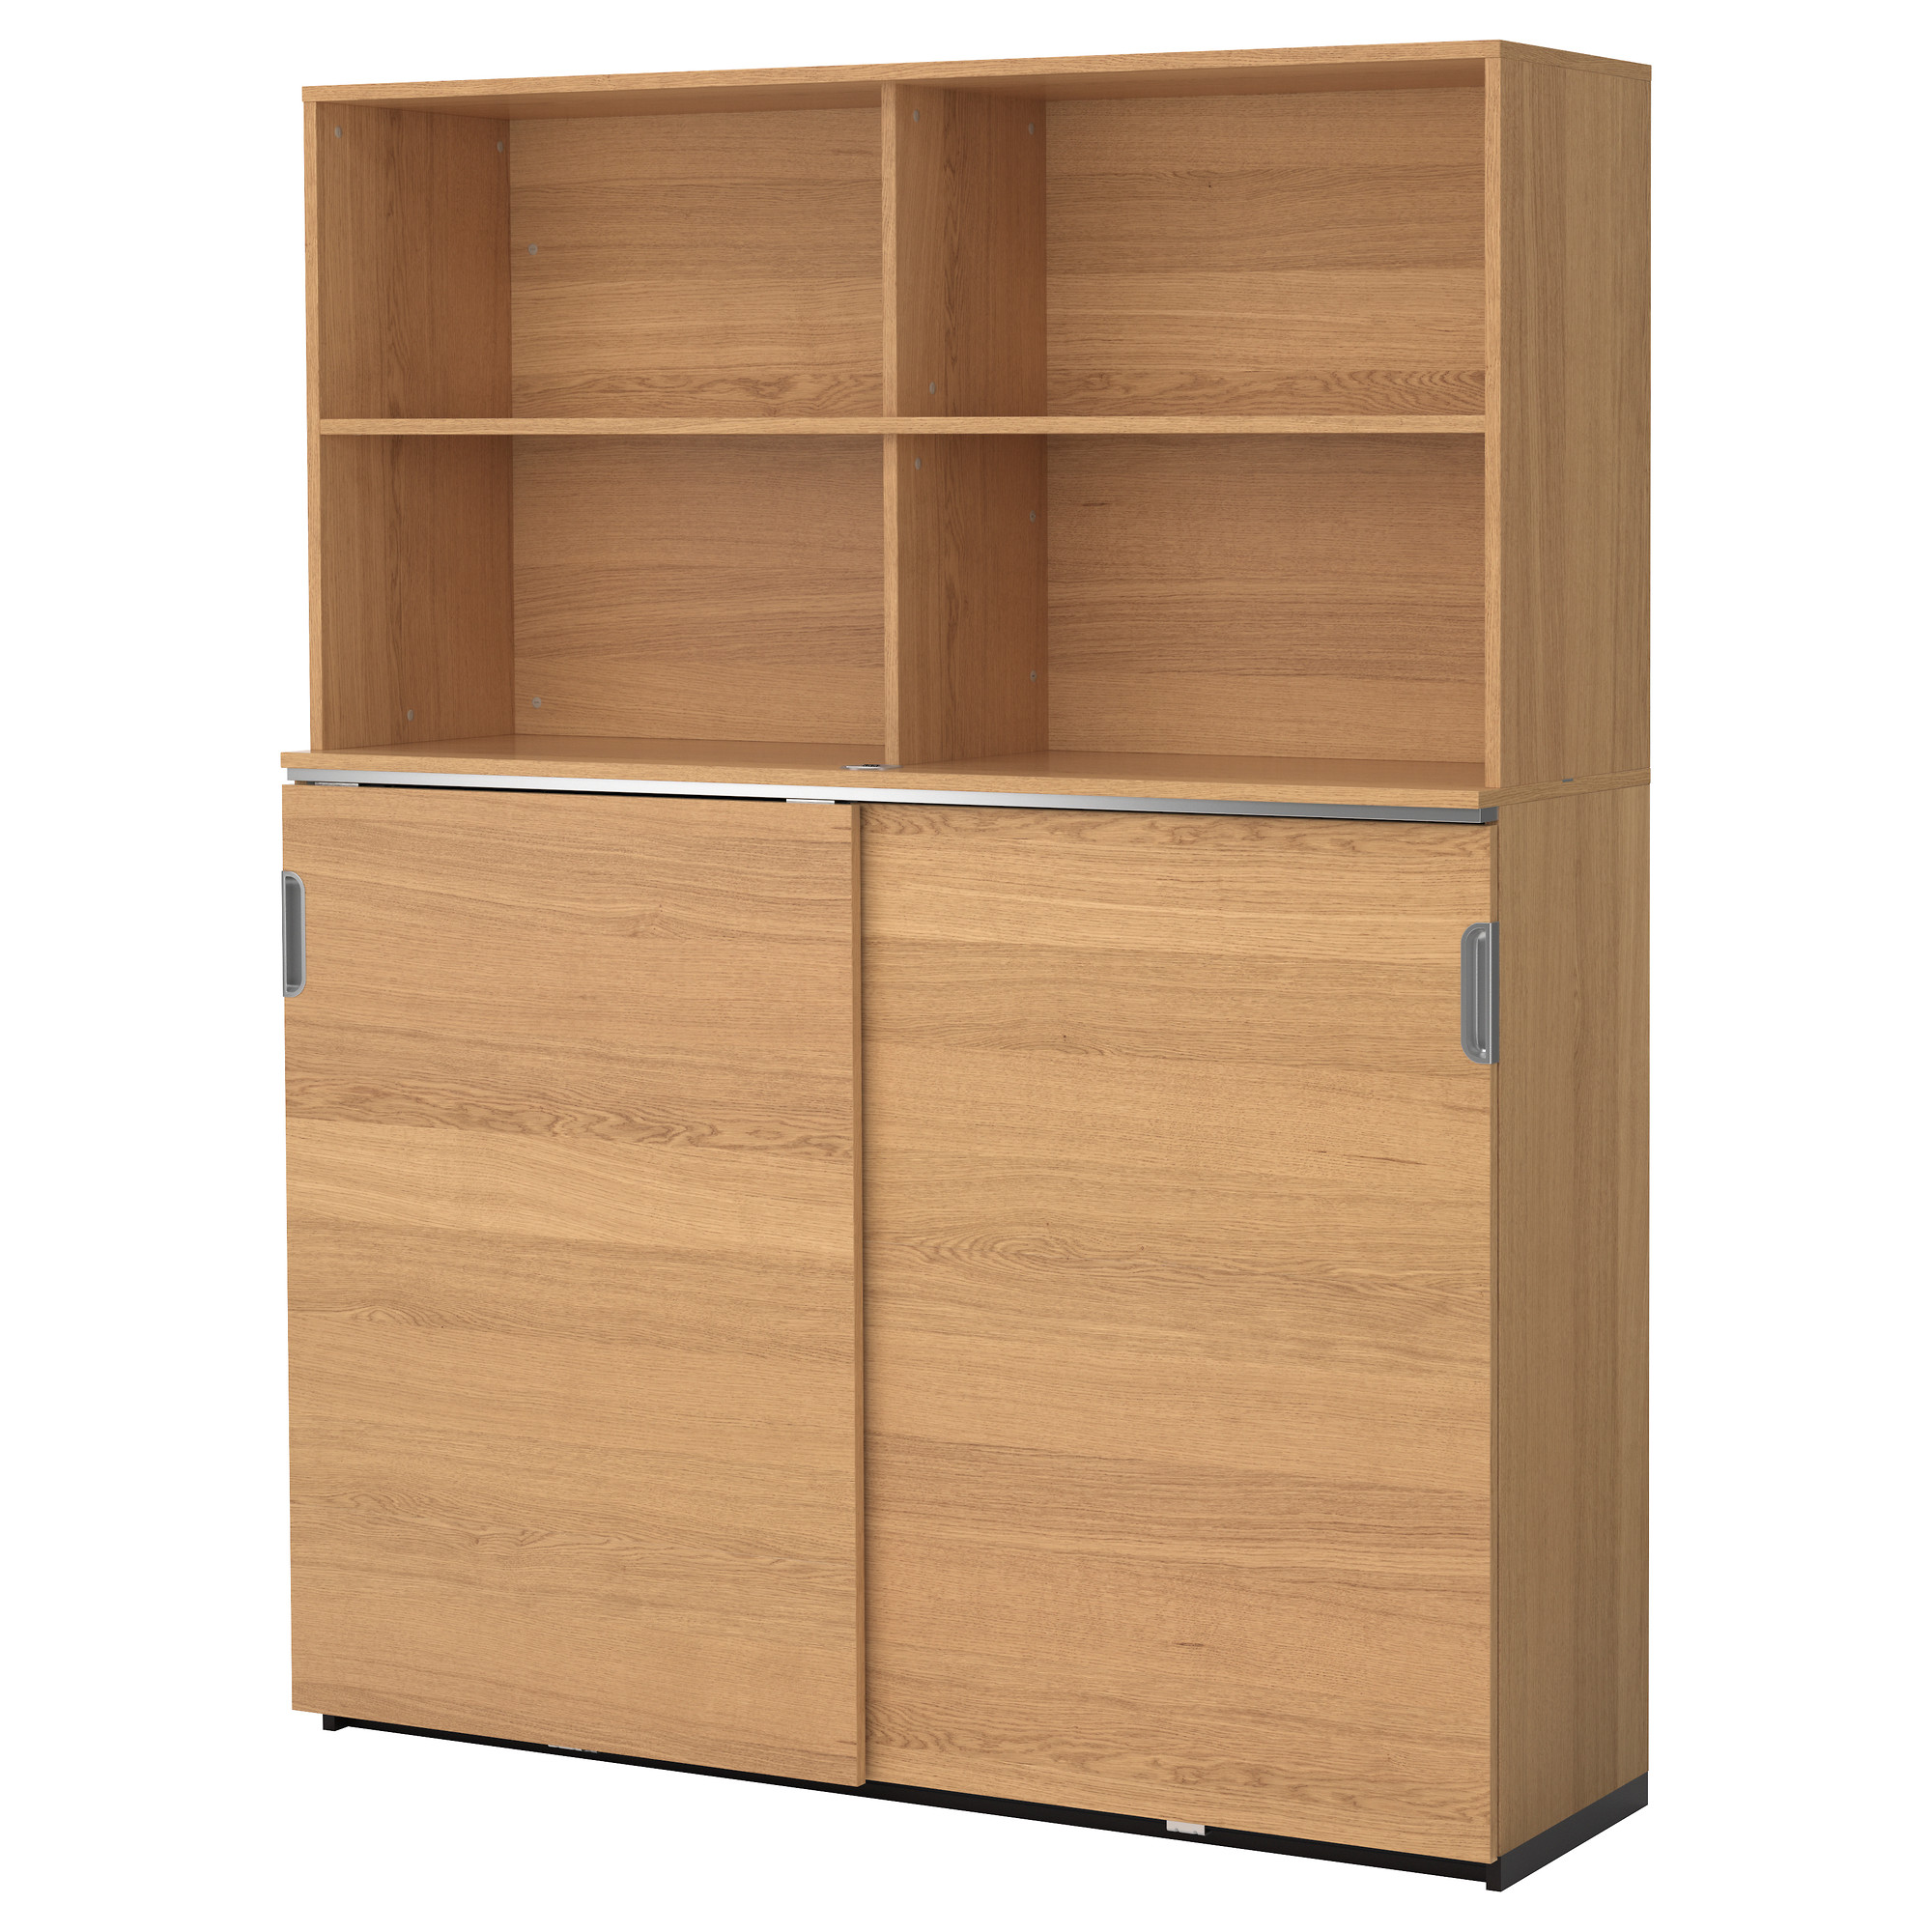 Files organizer ideas for your home office with ikea wood for Storage furniture